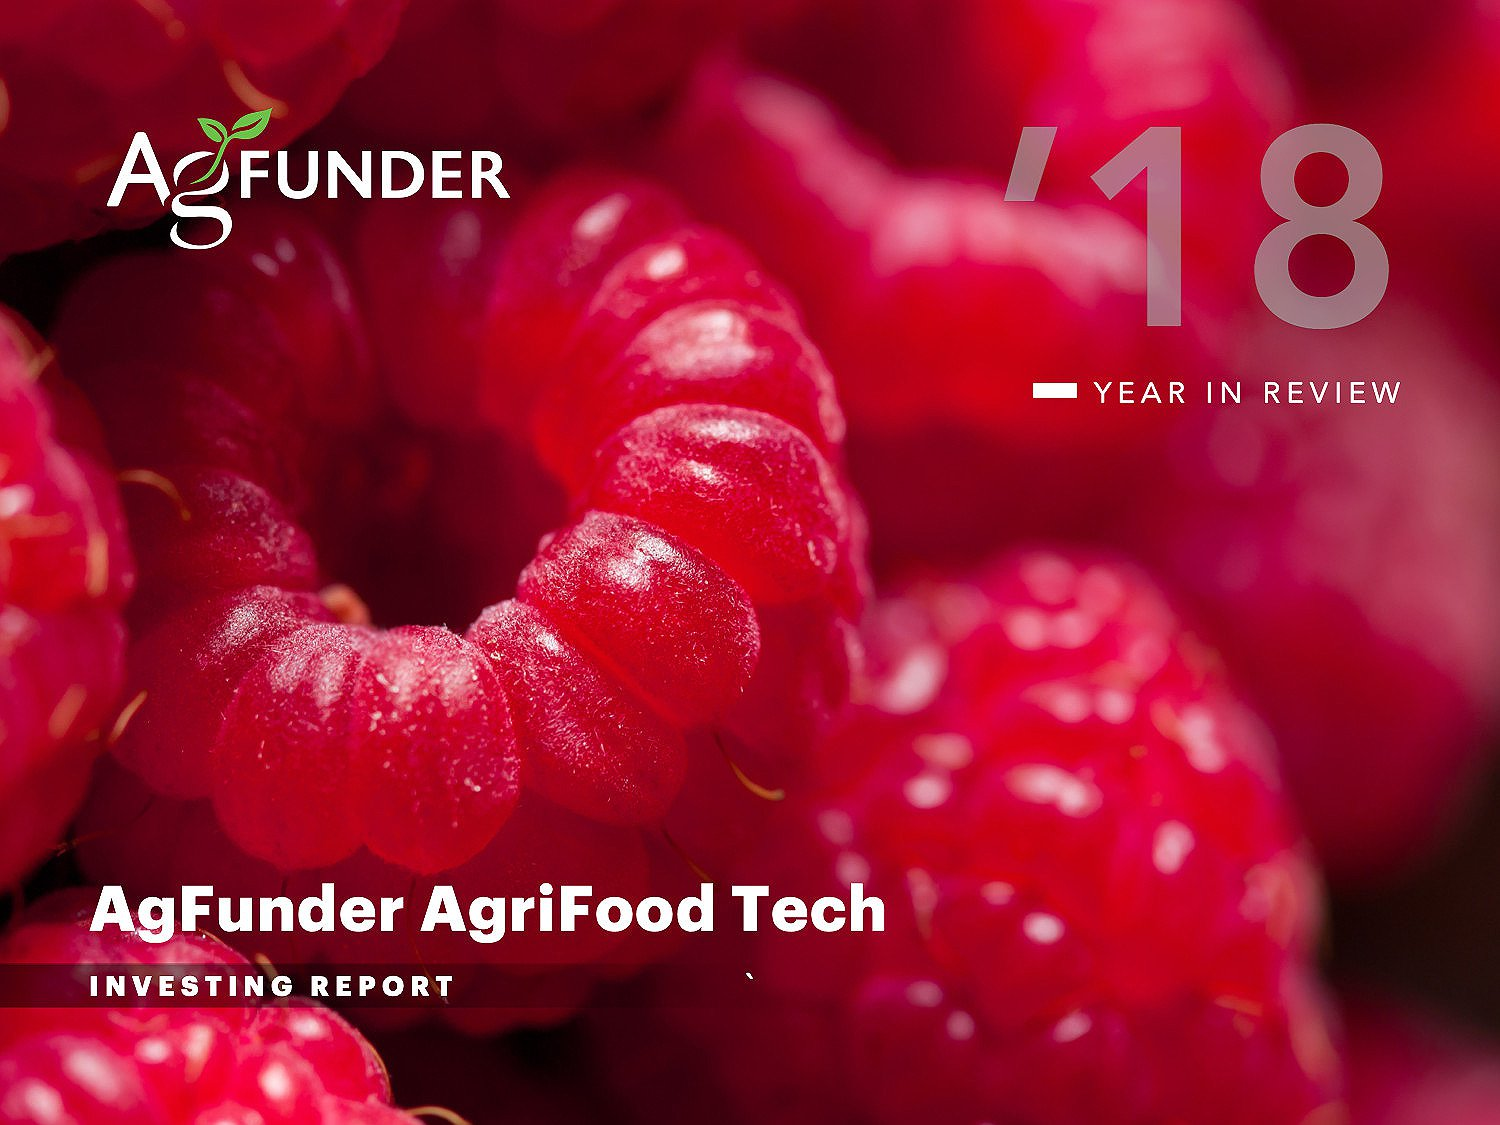 AgFunder AgriFood Tech Investing Report - 2018